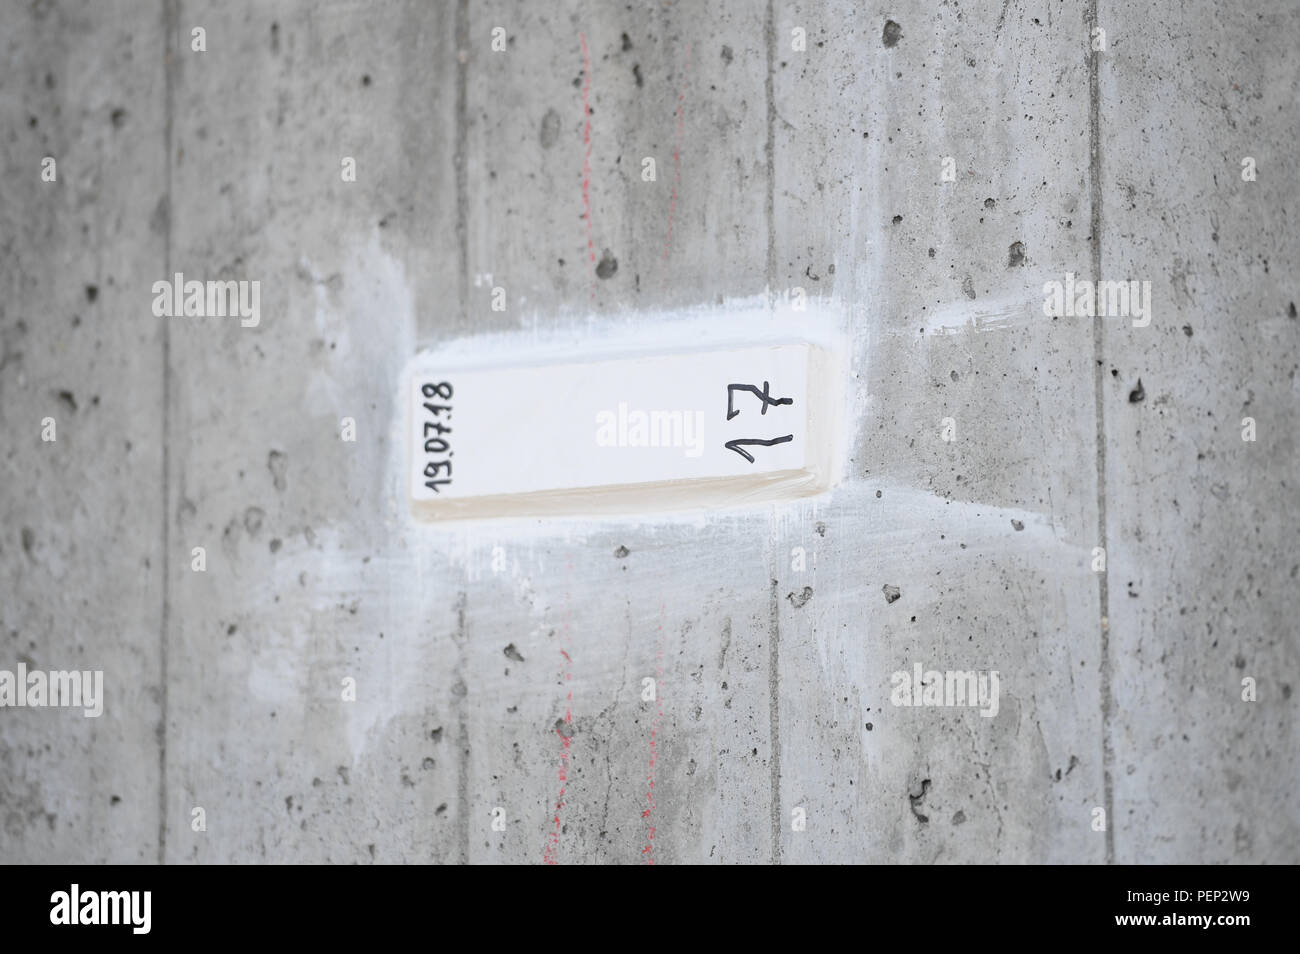 Wiesbaden, Germany. 16th Aug, 2018. A gypsum marker is attached to the Salzbach Valley Bridge (Motorway A66) above a crack. Hessen Mobil uses the bridge as an example to show how the condition of a bridge is checked. Credit: Arne Dedert/dpa/Alamy Live News - Stock Image